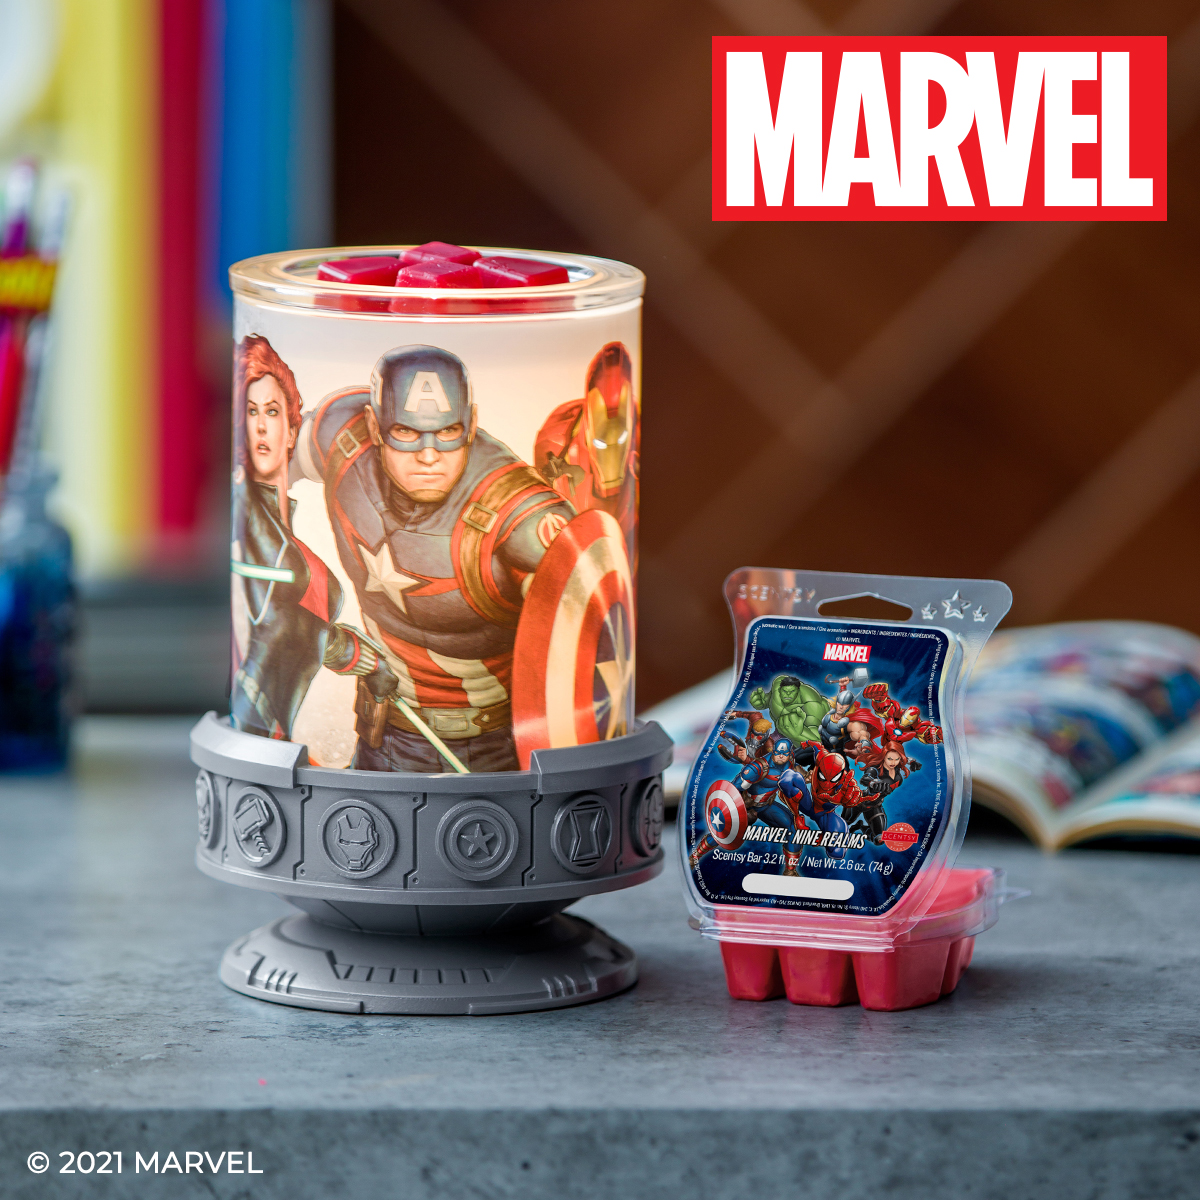 SCENTSY MARVEL WARMER